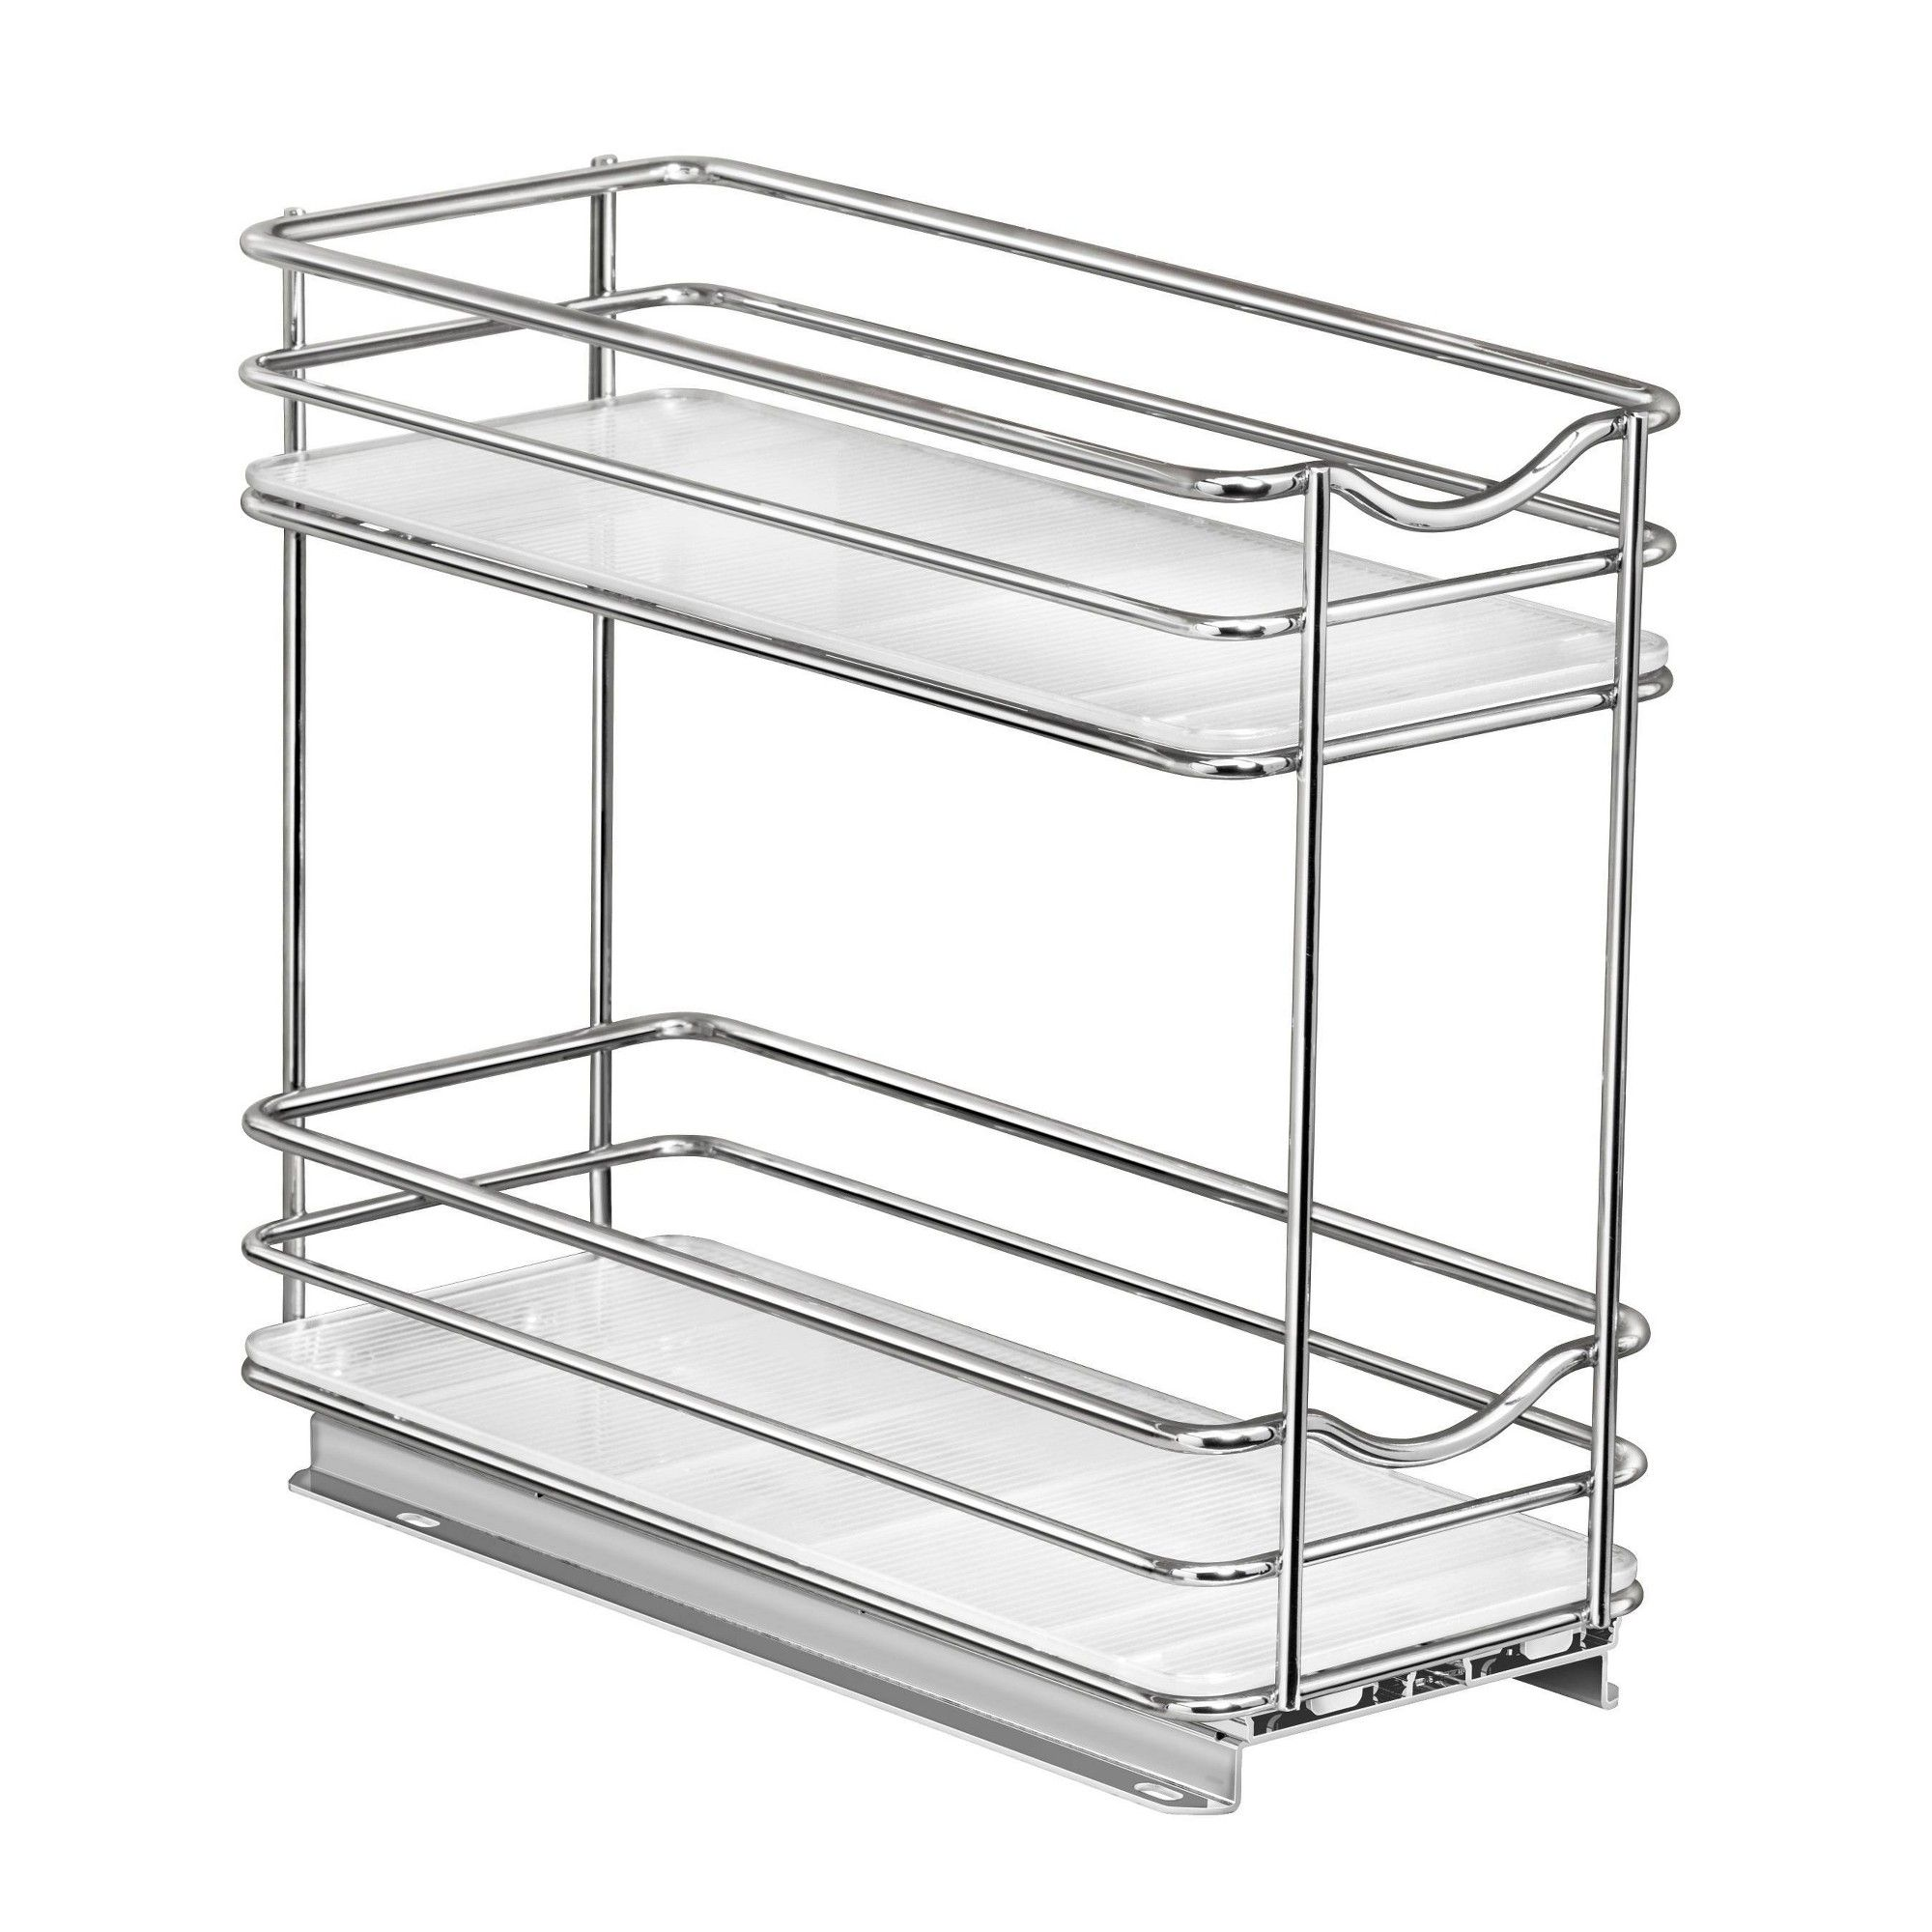 Best Lynk Professional 10 3 X 8 5 X 4 3 Chrome 2 Tier Spice 640 x 480